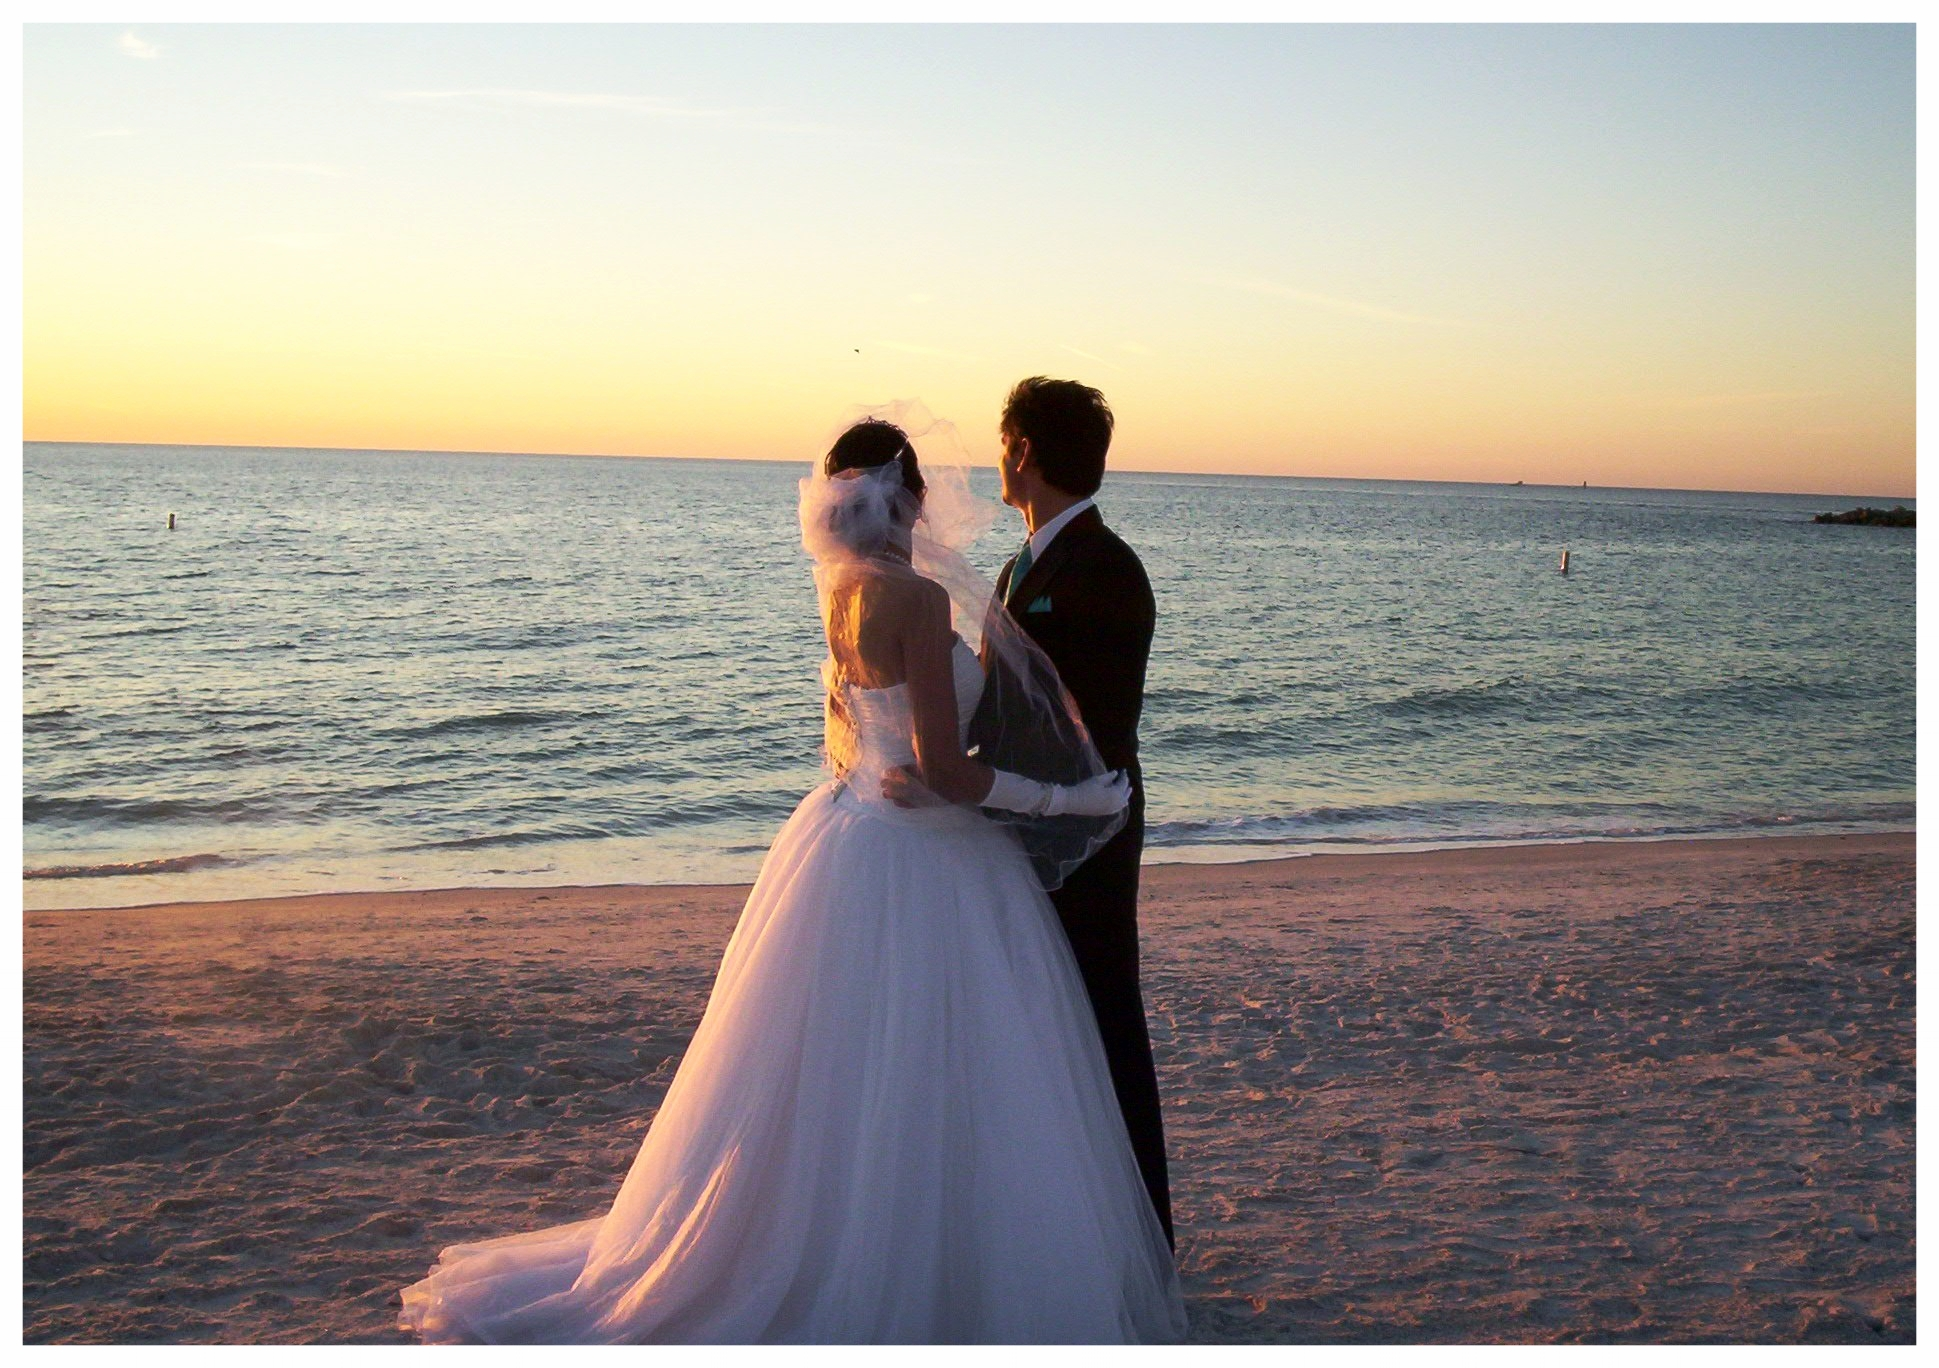 beach_weddings_at_sunset_wallpaper_cool_hd.jpg